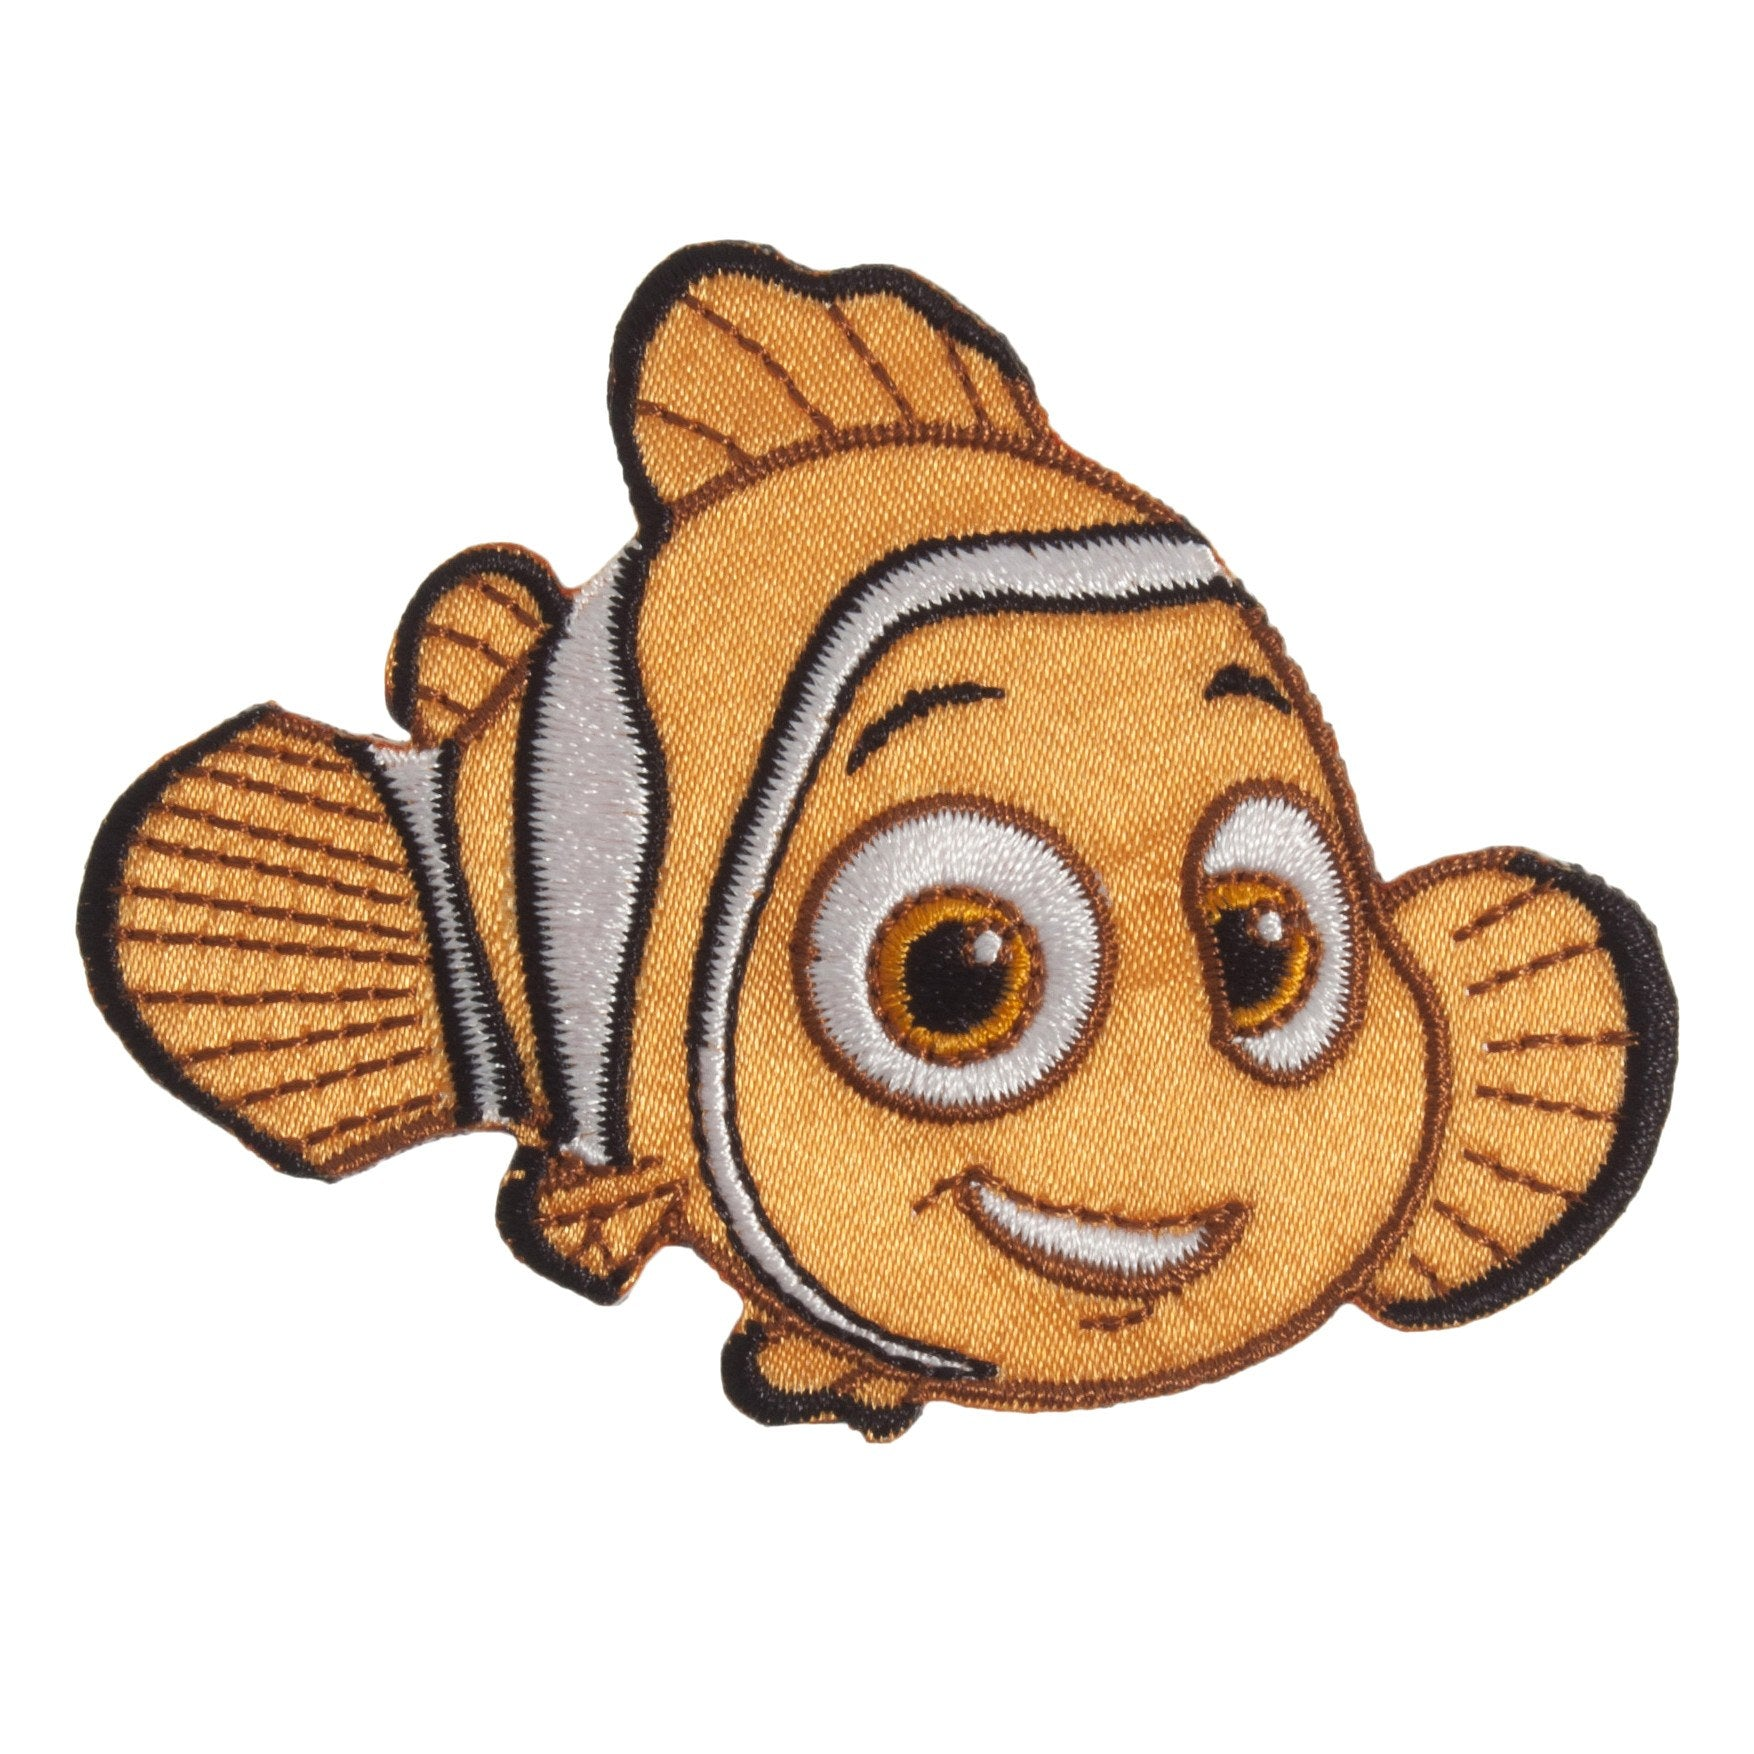 Character Cloth Badges - Finding Dory: Nemo